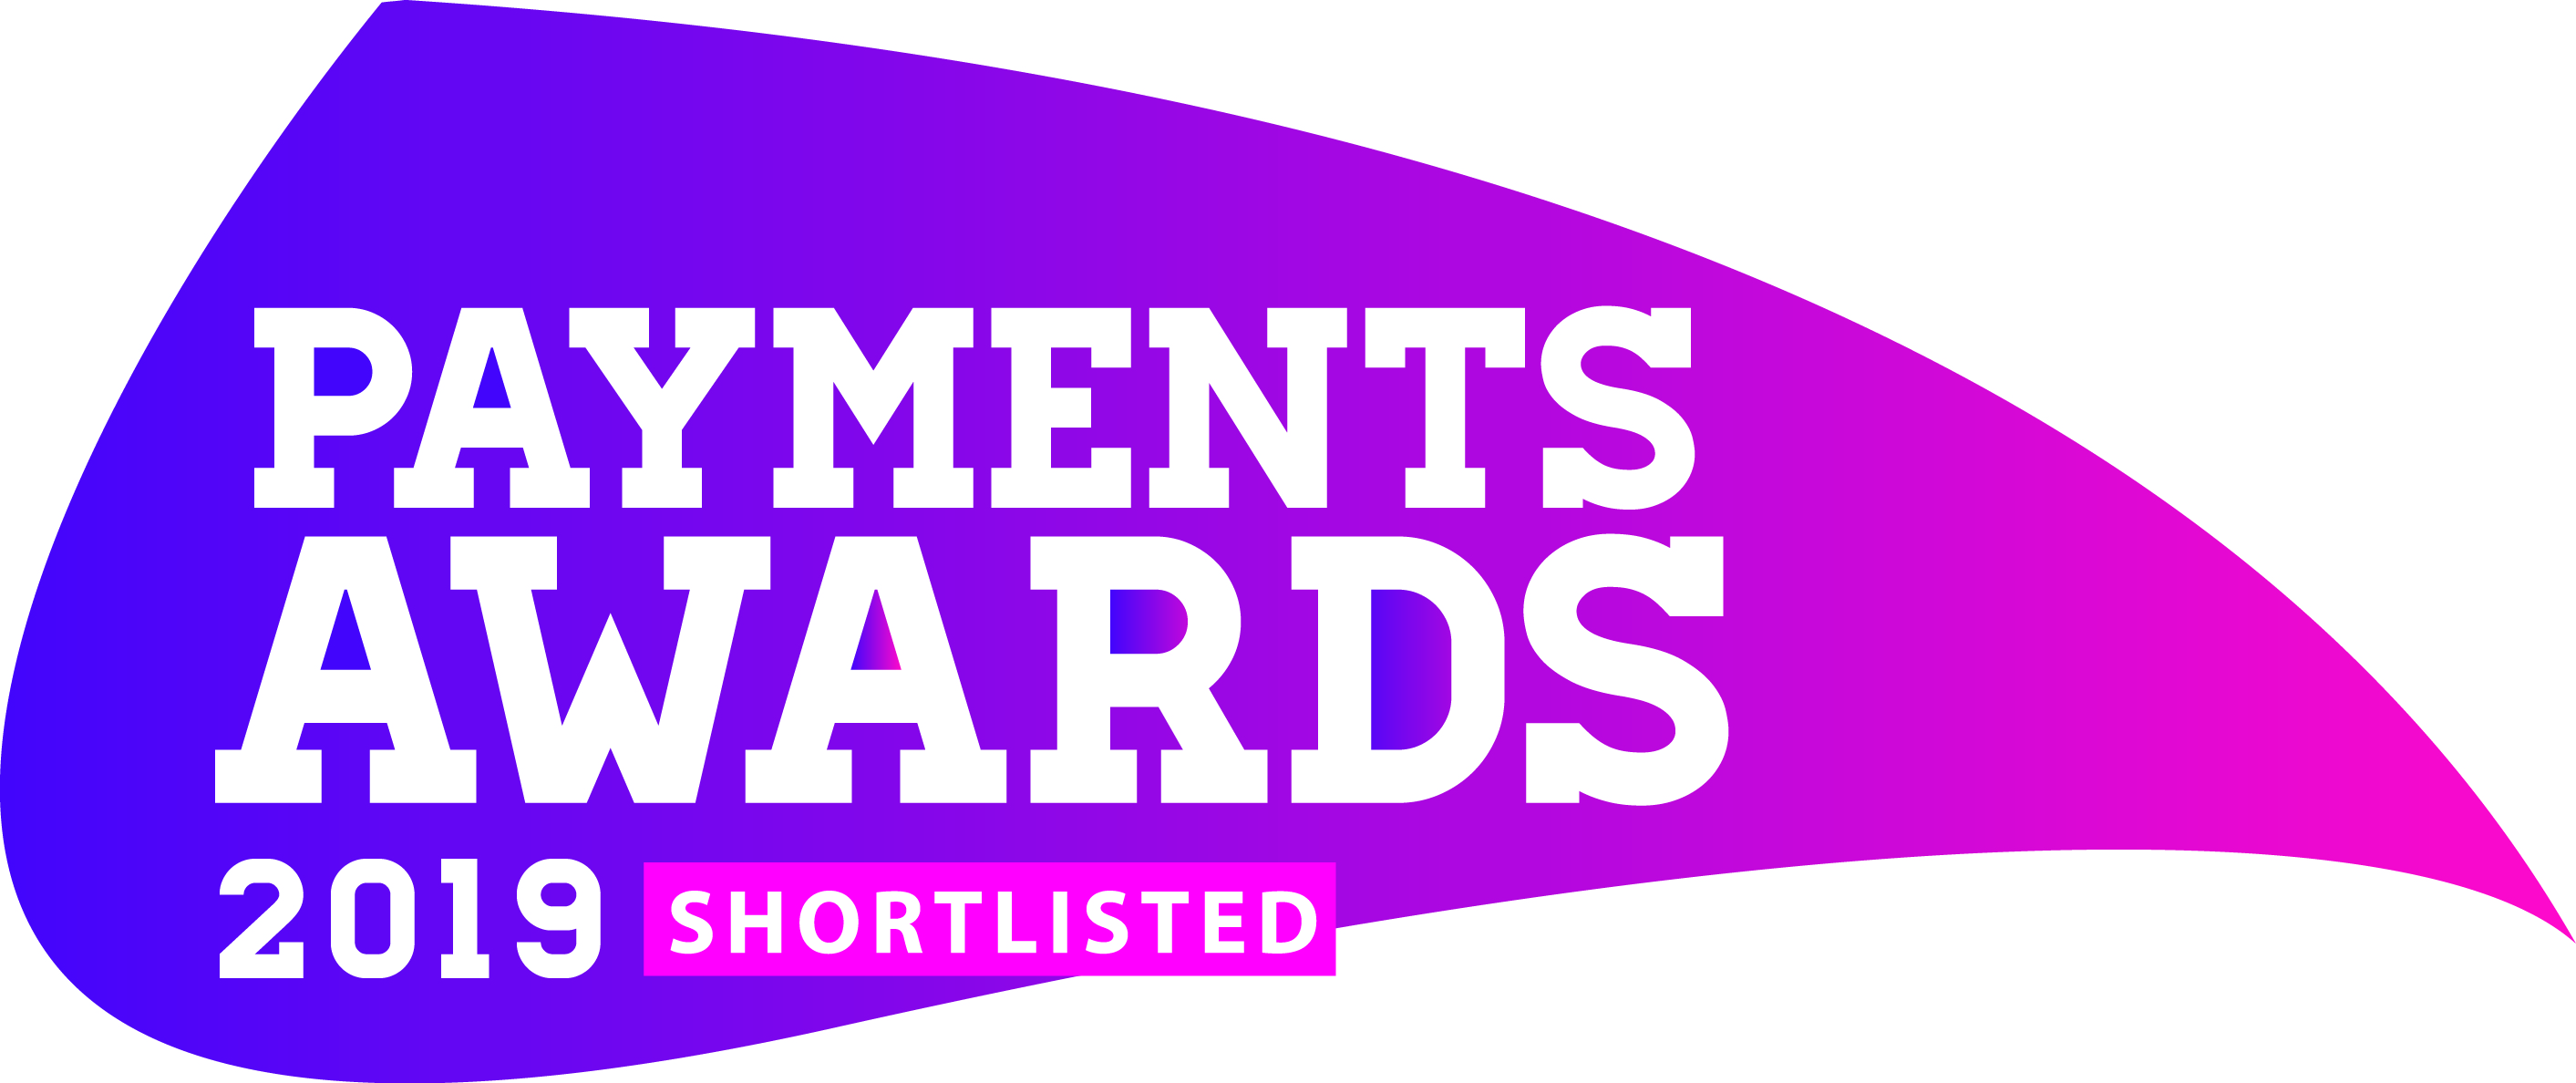 Centtrip's payments and prepaid card solutions shortlisted for Payments Awards 2019